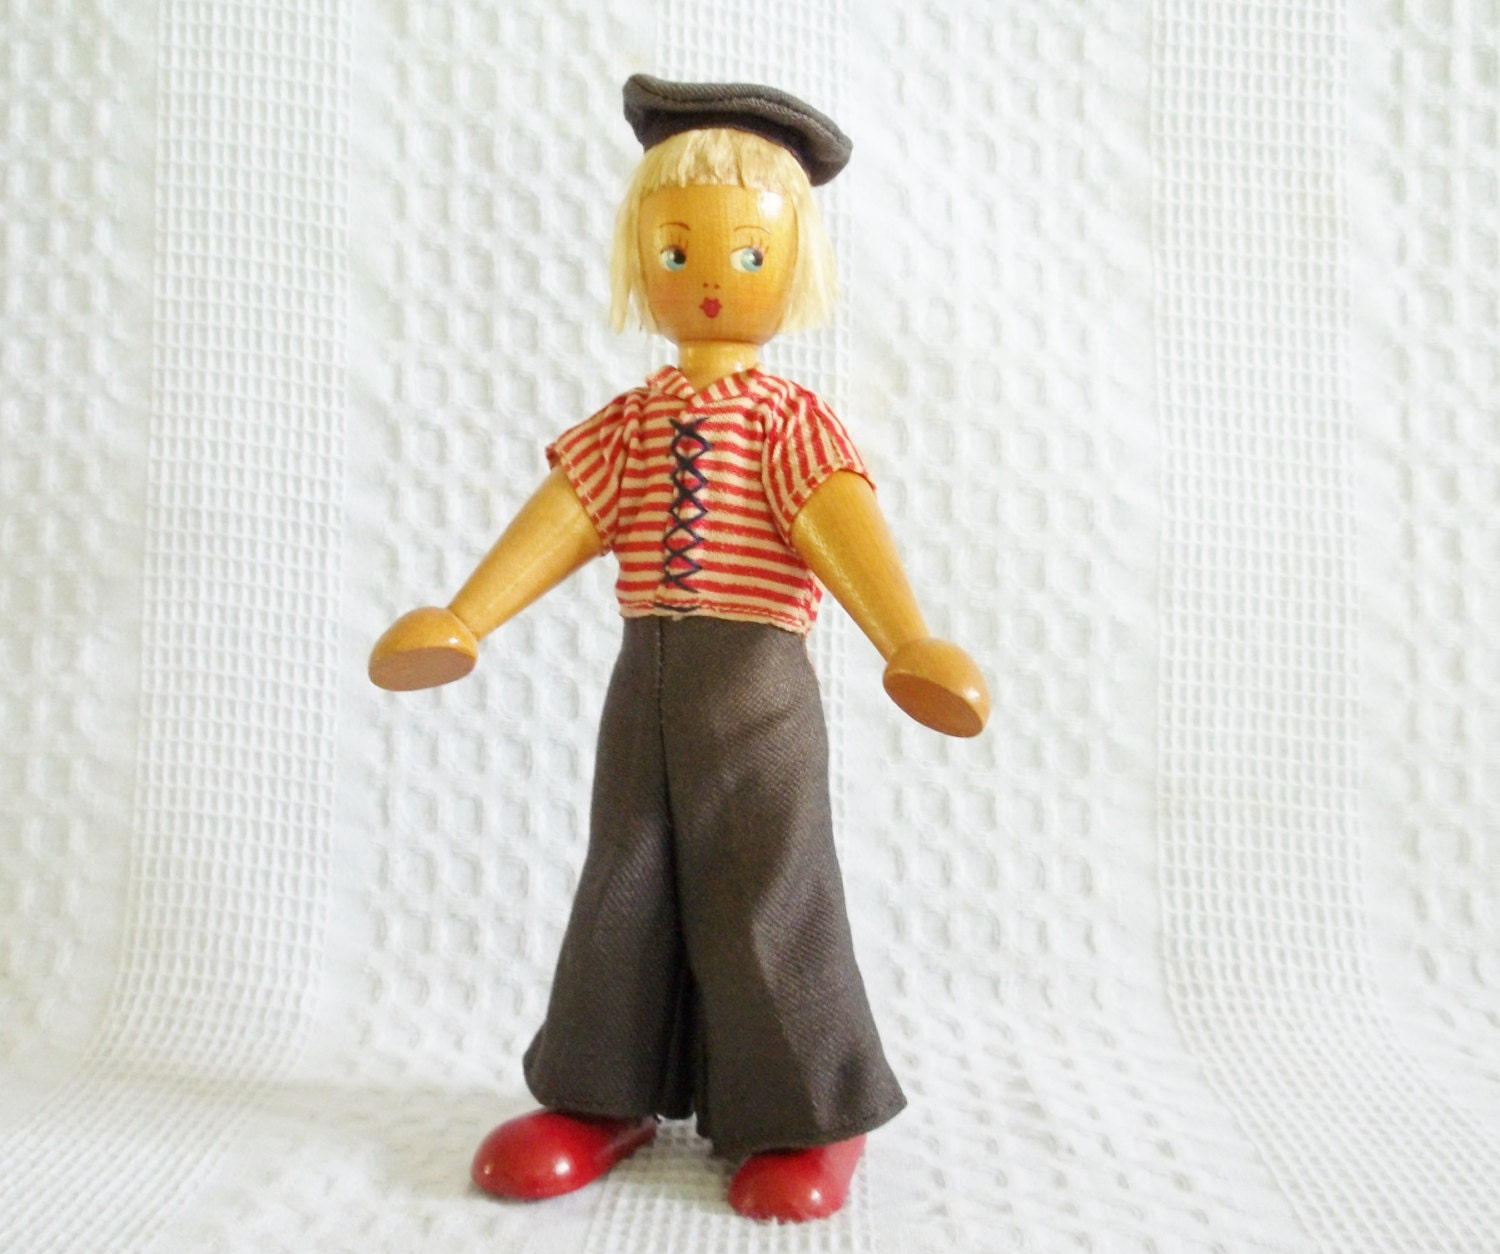 Vintage wooden doll Poland wood clothes pin doll clothespin